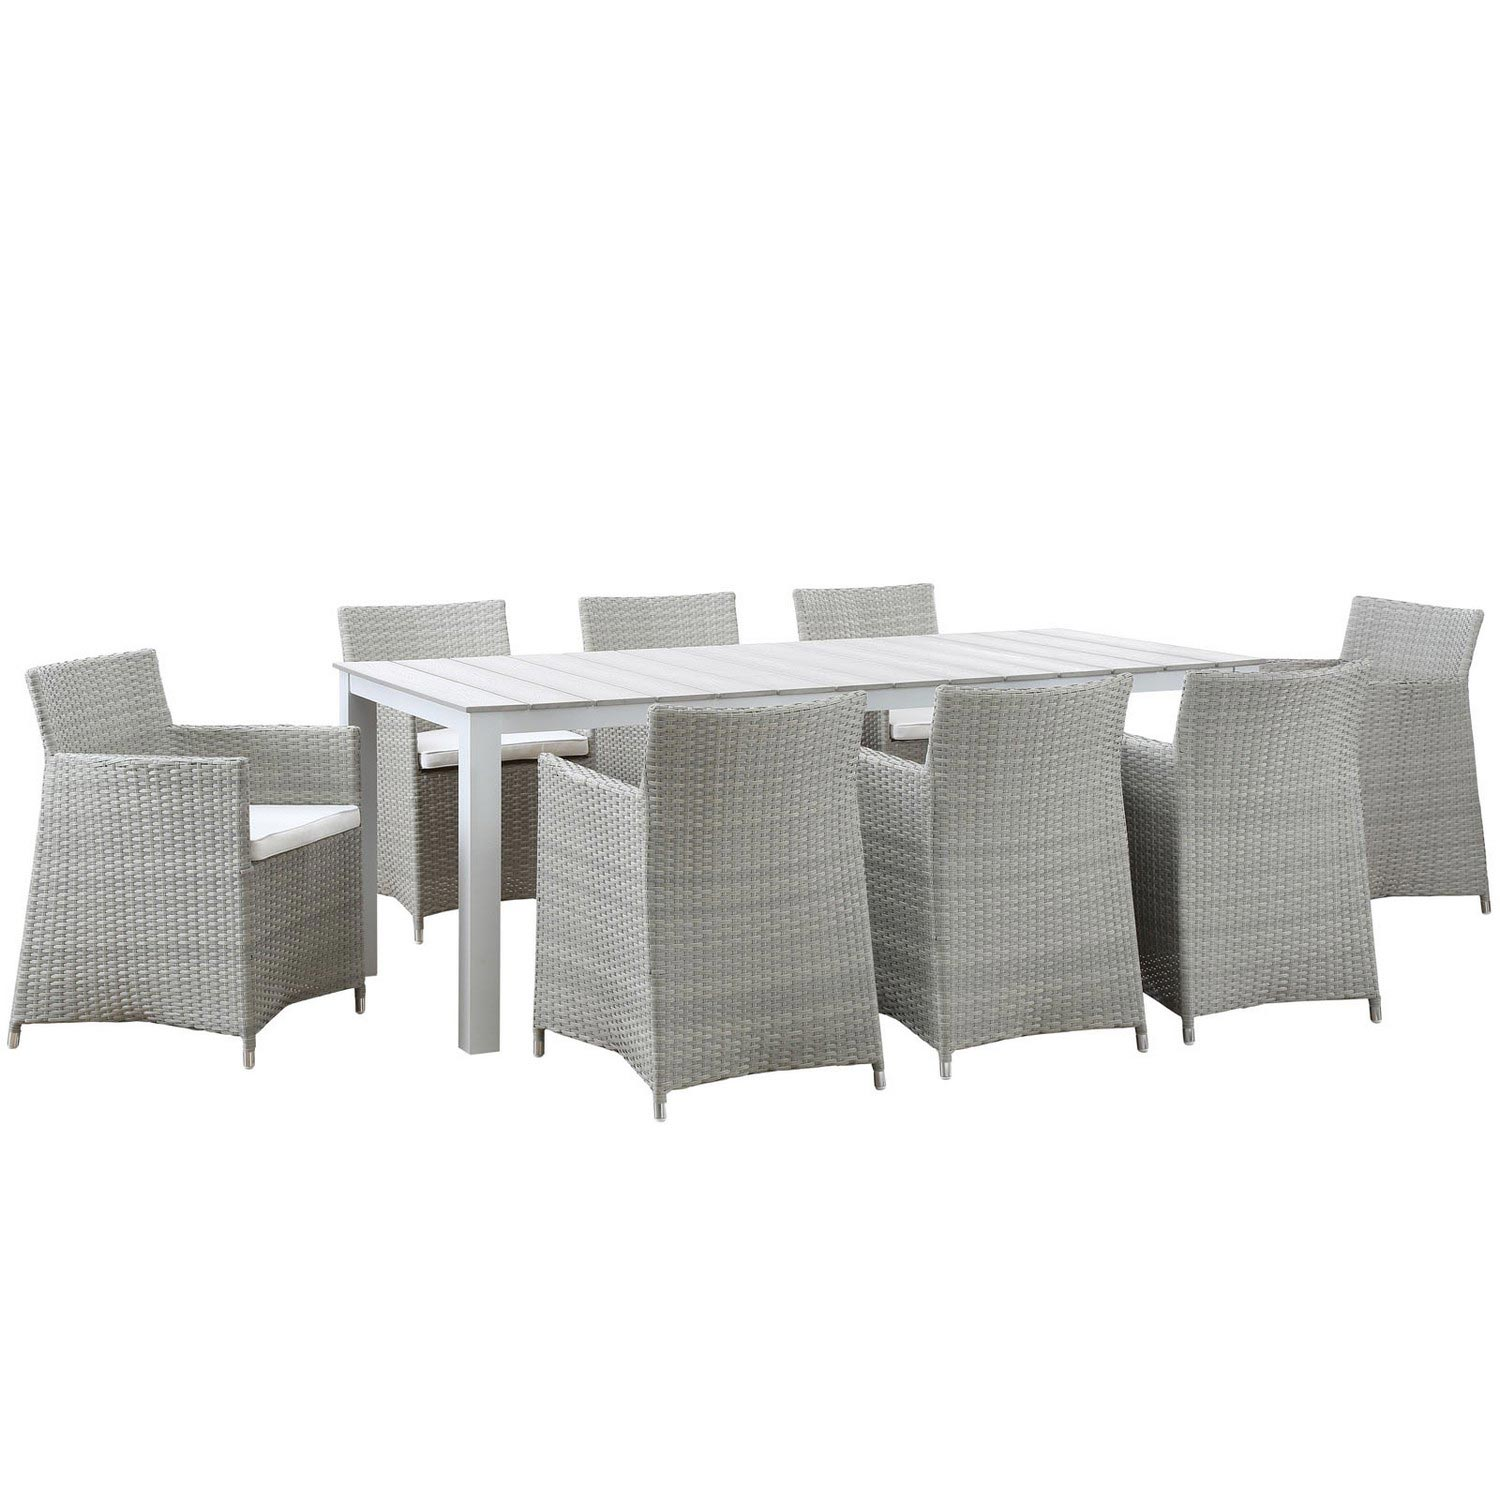 Modway Junction 9 Piece Outdoor Patio Dining Set - Gray/White